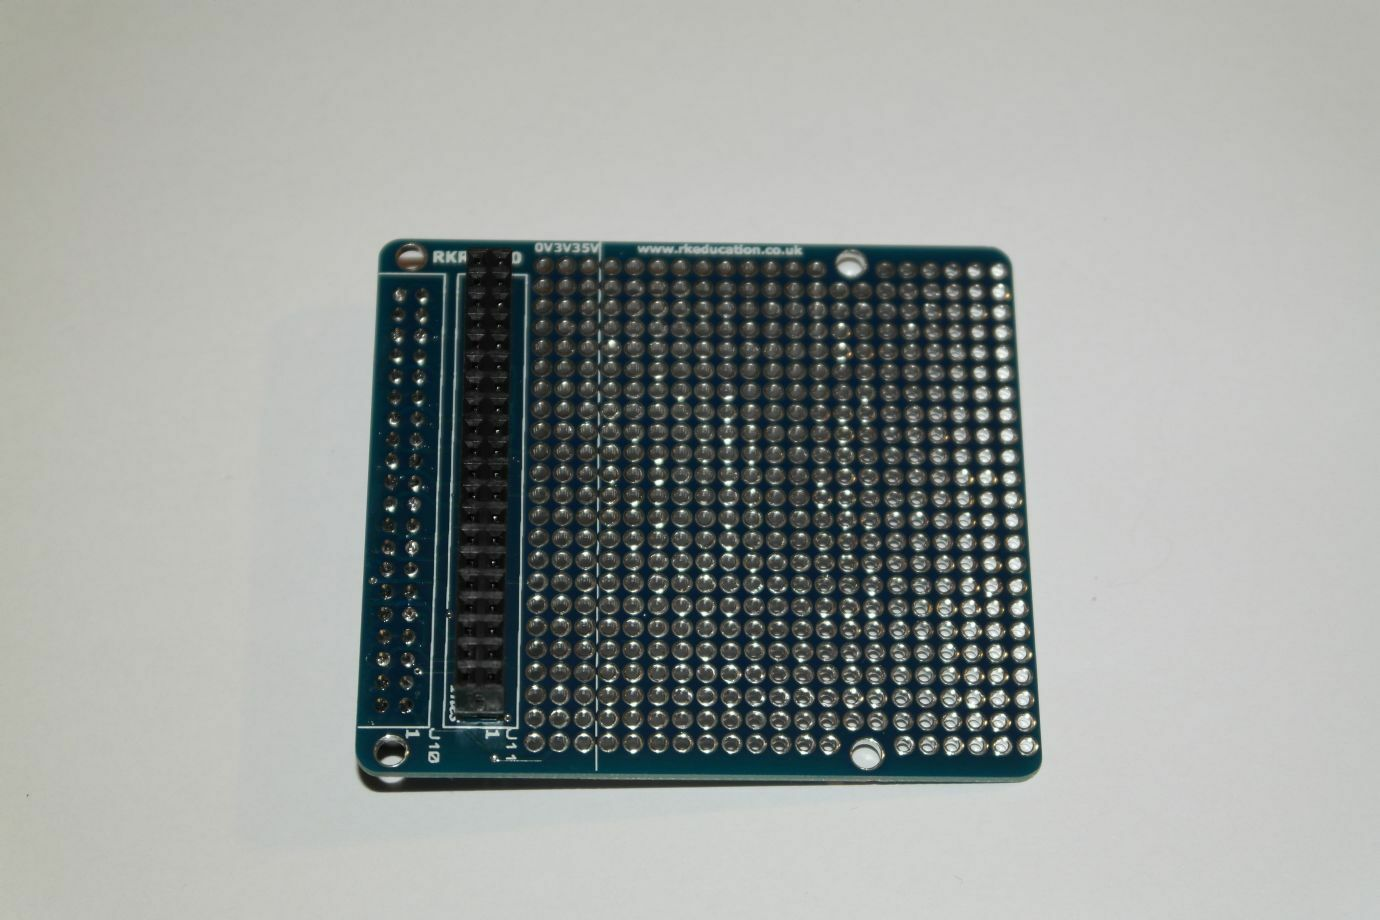 Rkrppt40 Gpio Breakout Prototype Pcb For Raspberry Pi B A 40 Pins 10 Pcs 50mmx70mm Single Side Copper Cover Circuit Board Stripboard 1 Of See More